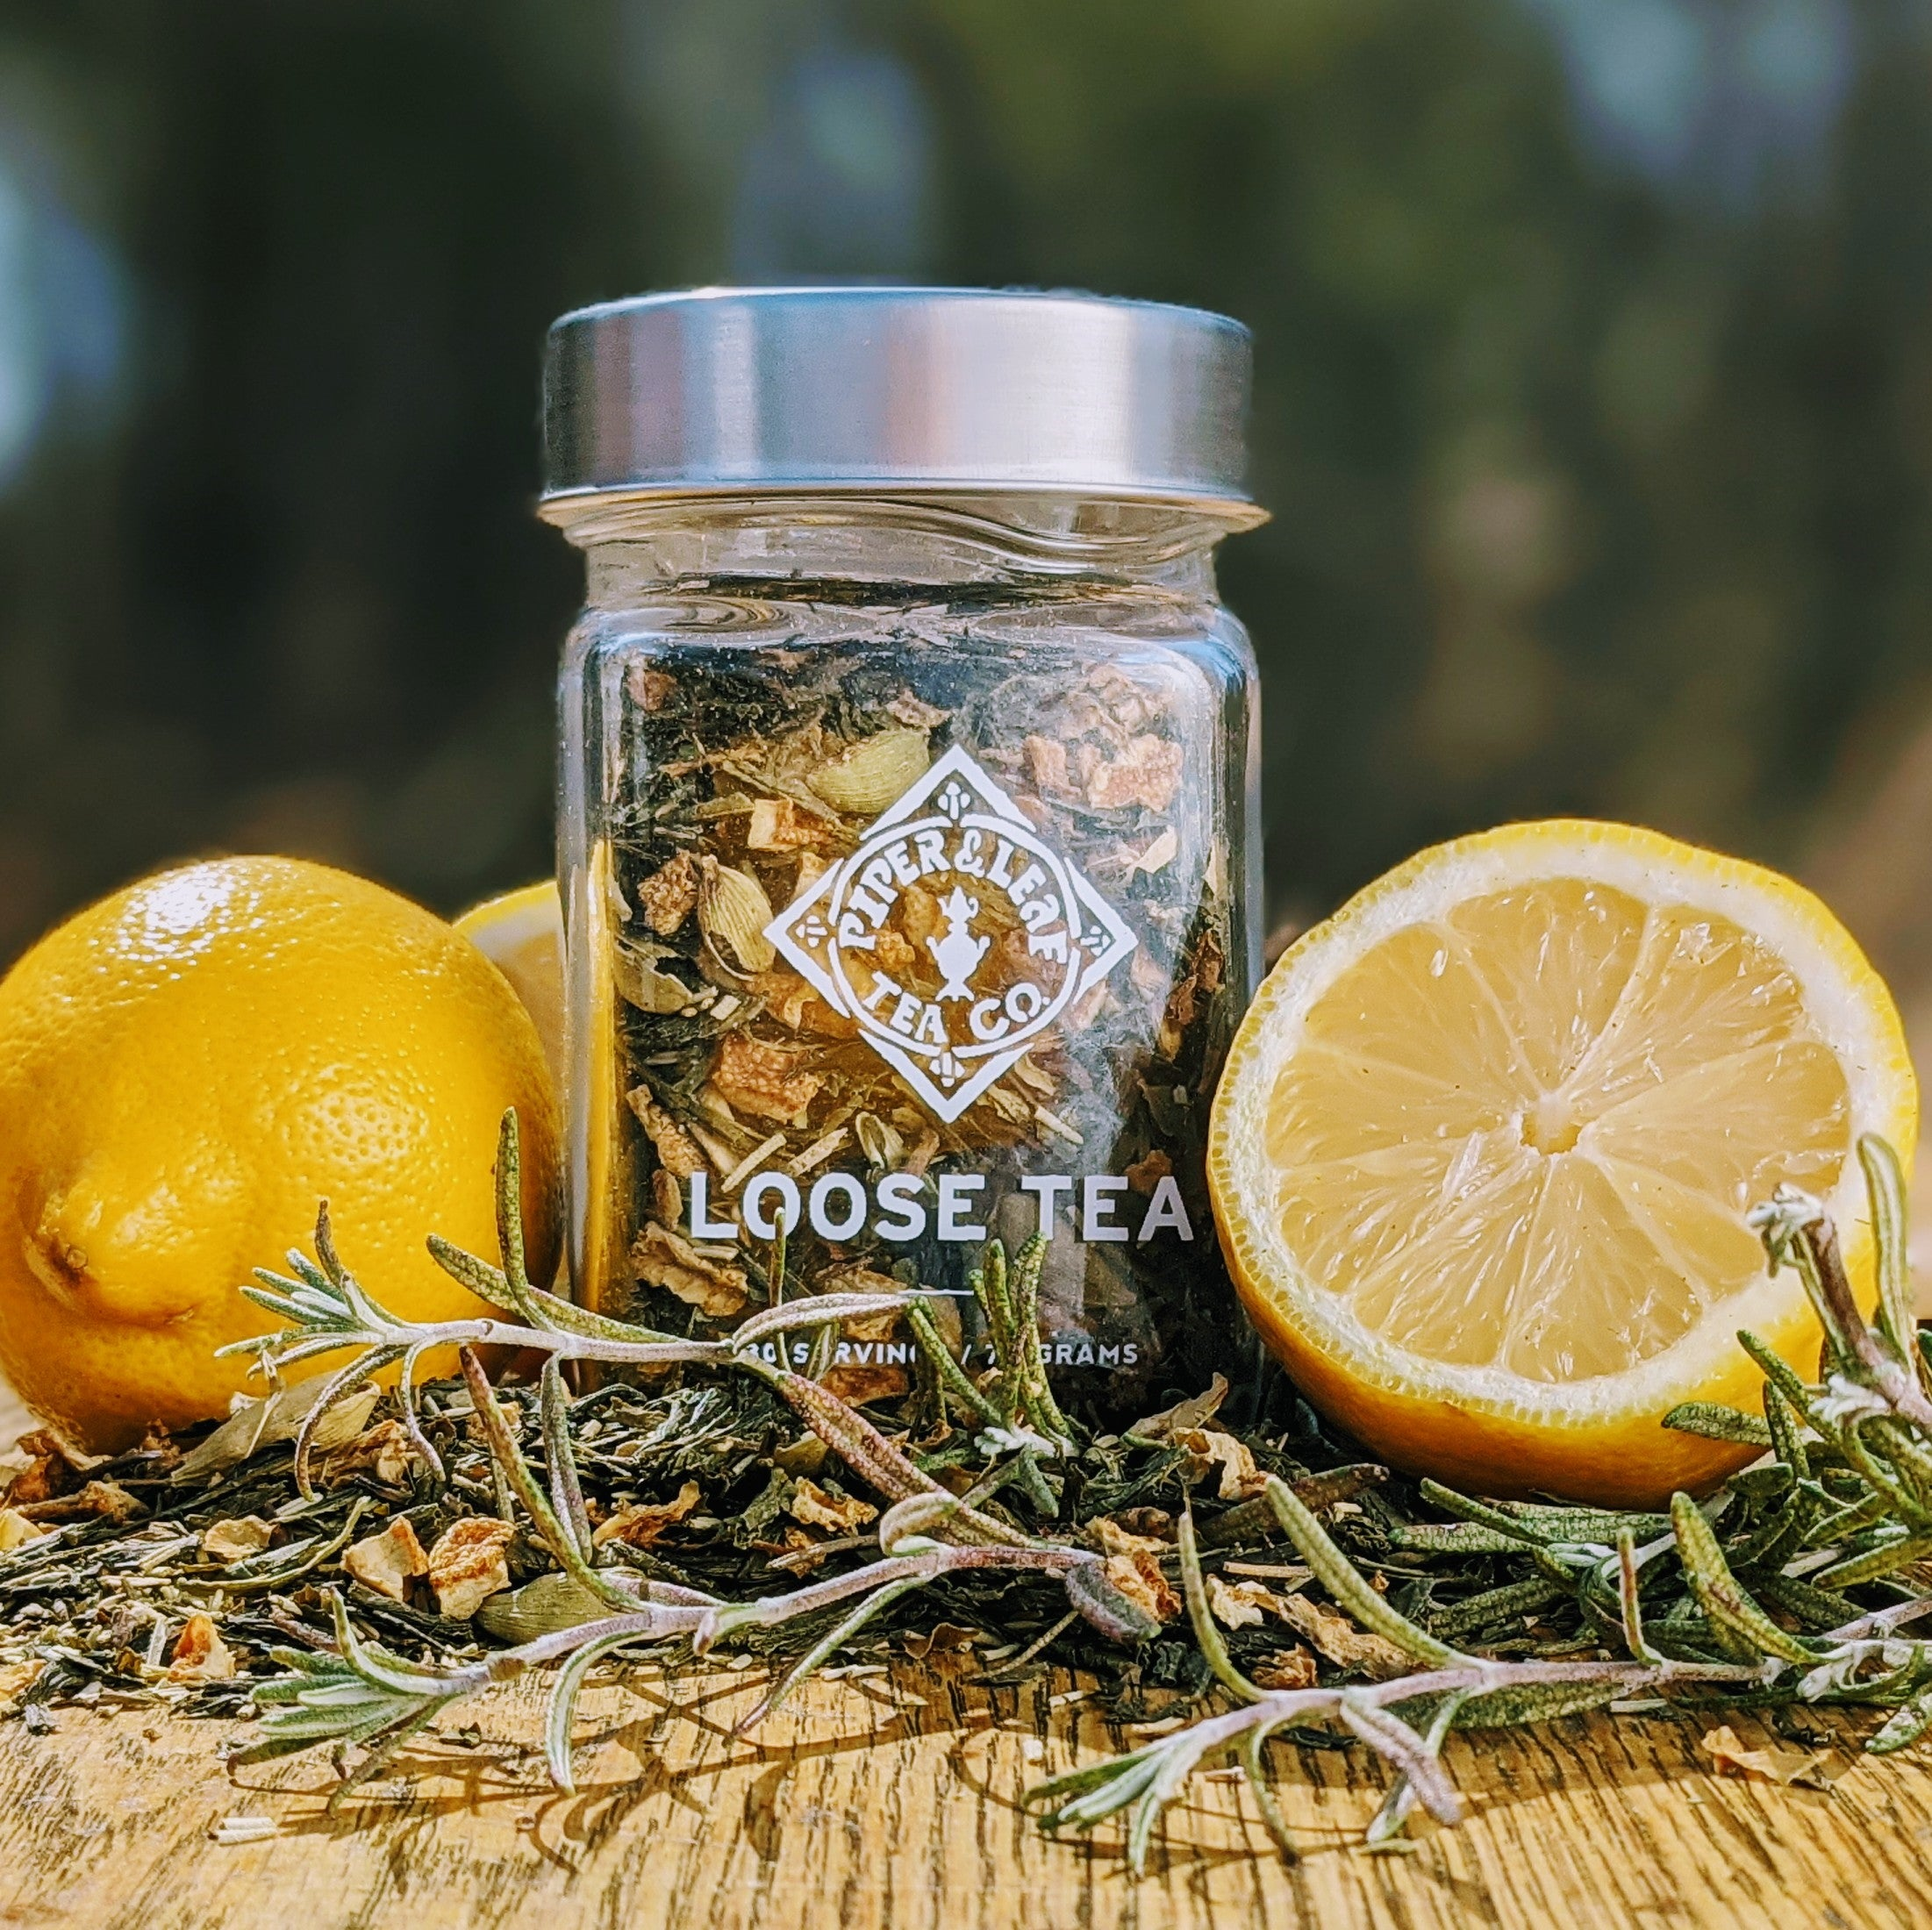 Springdrop Spritzer Glass Jar of Loose Leaf Tea - 30 Servings